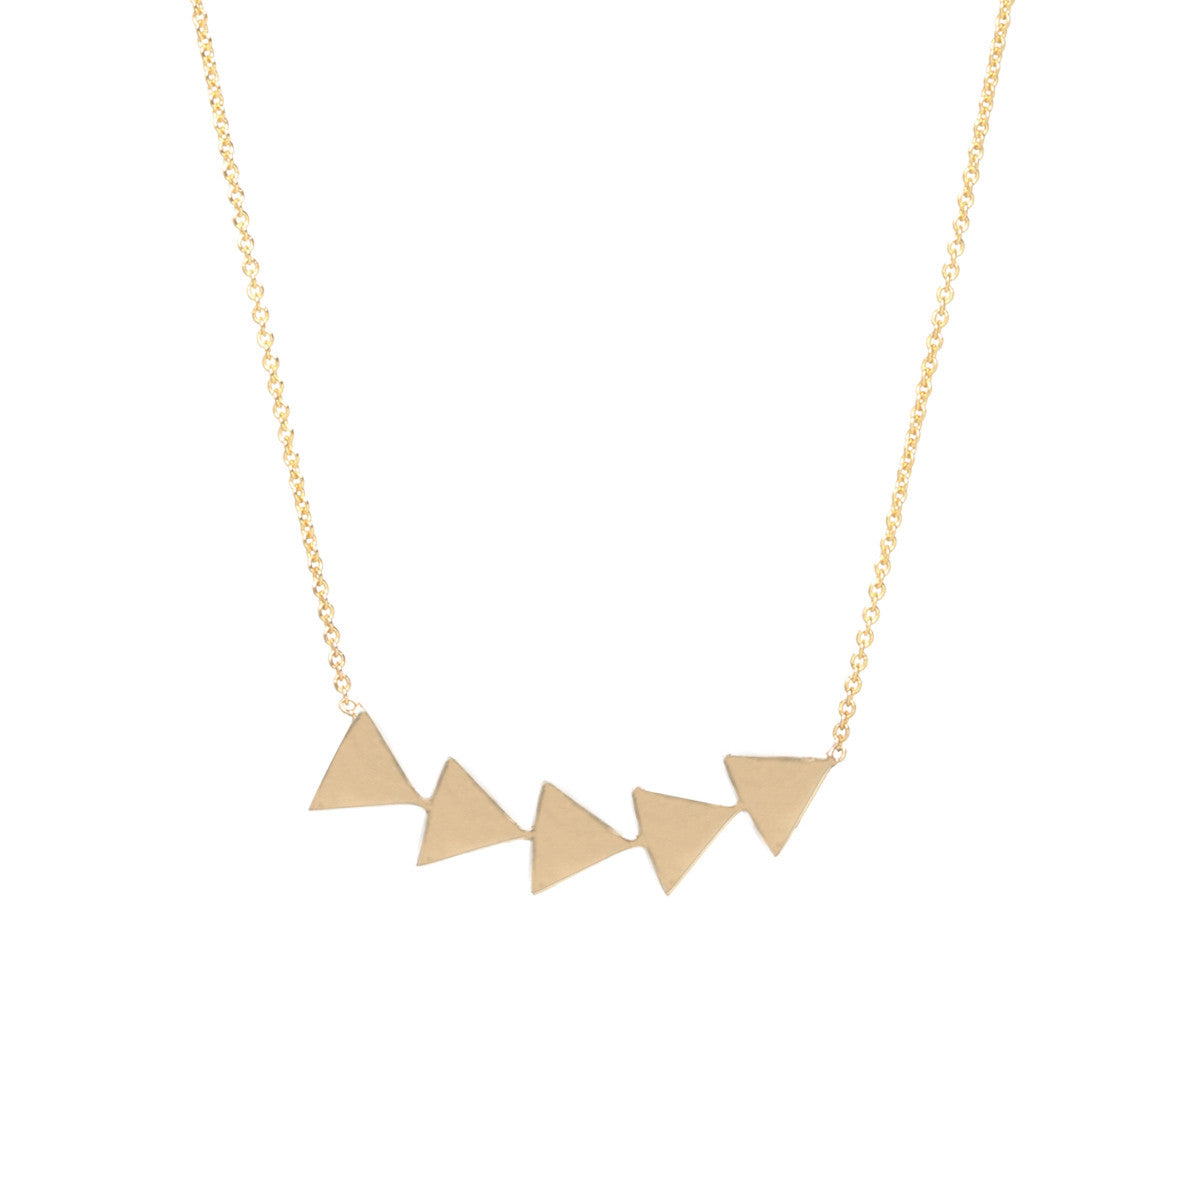 14k 5 triangle necklace